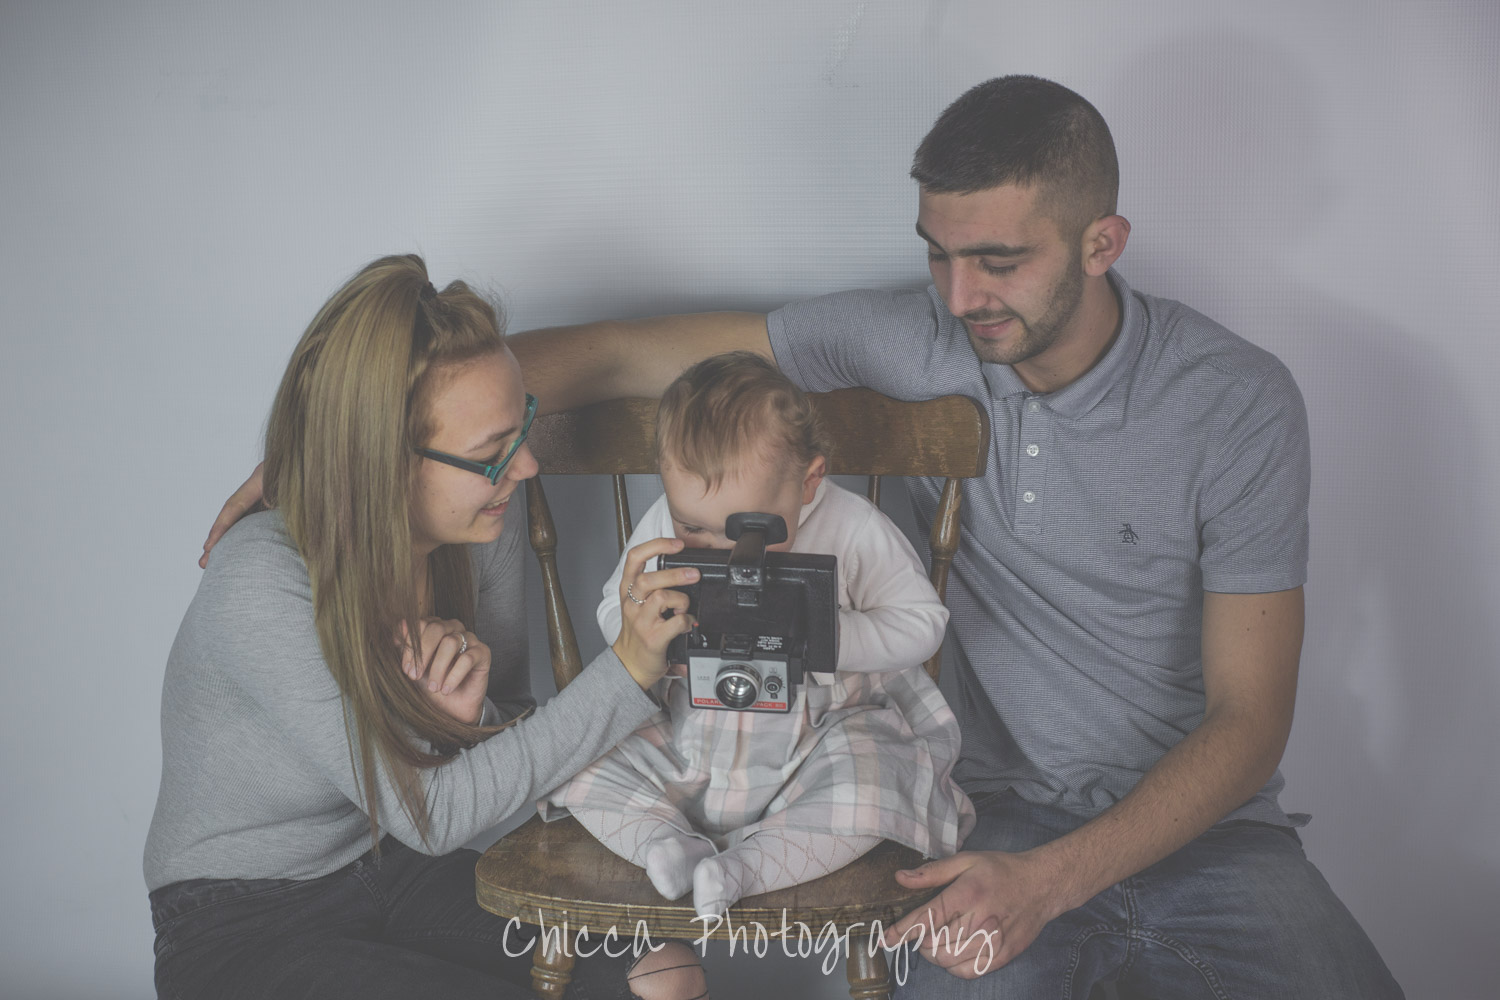 family-baby-photographer-portraits-in-keighley-bradford-skipton-halifax-10.jpg